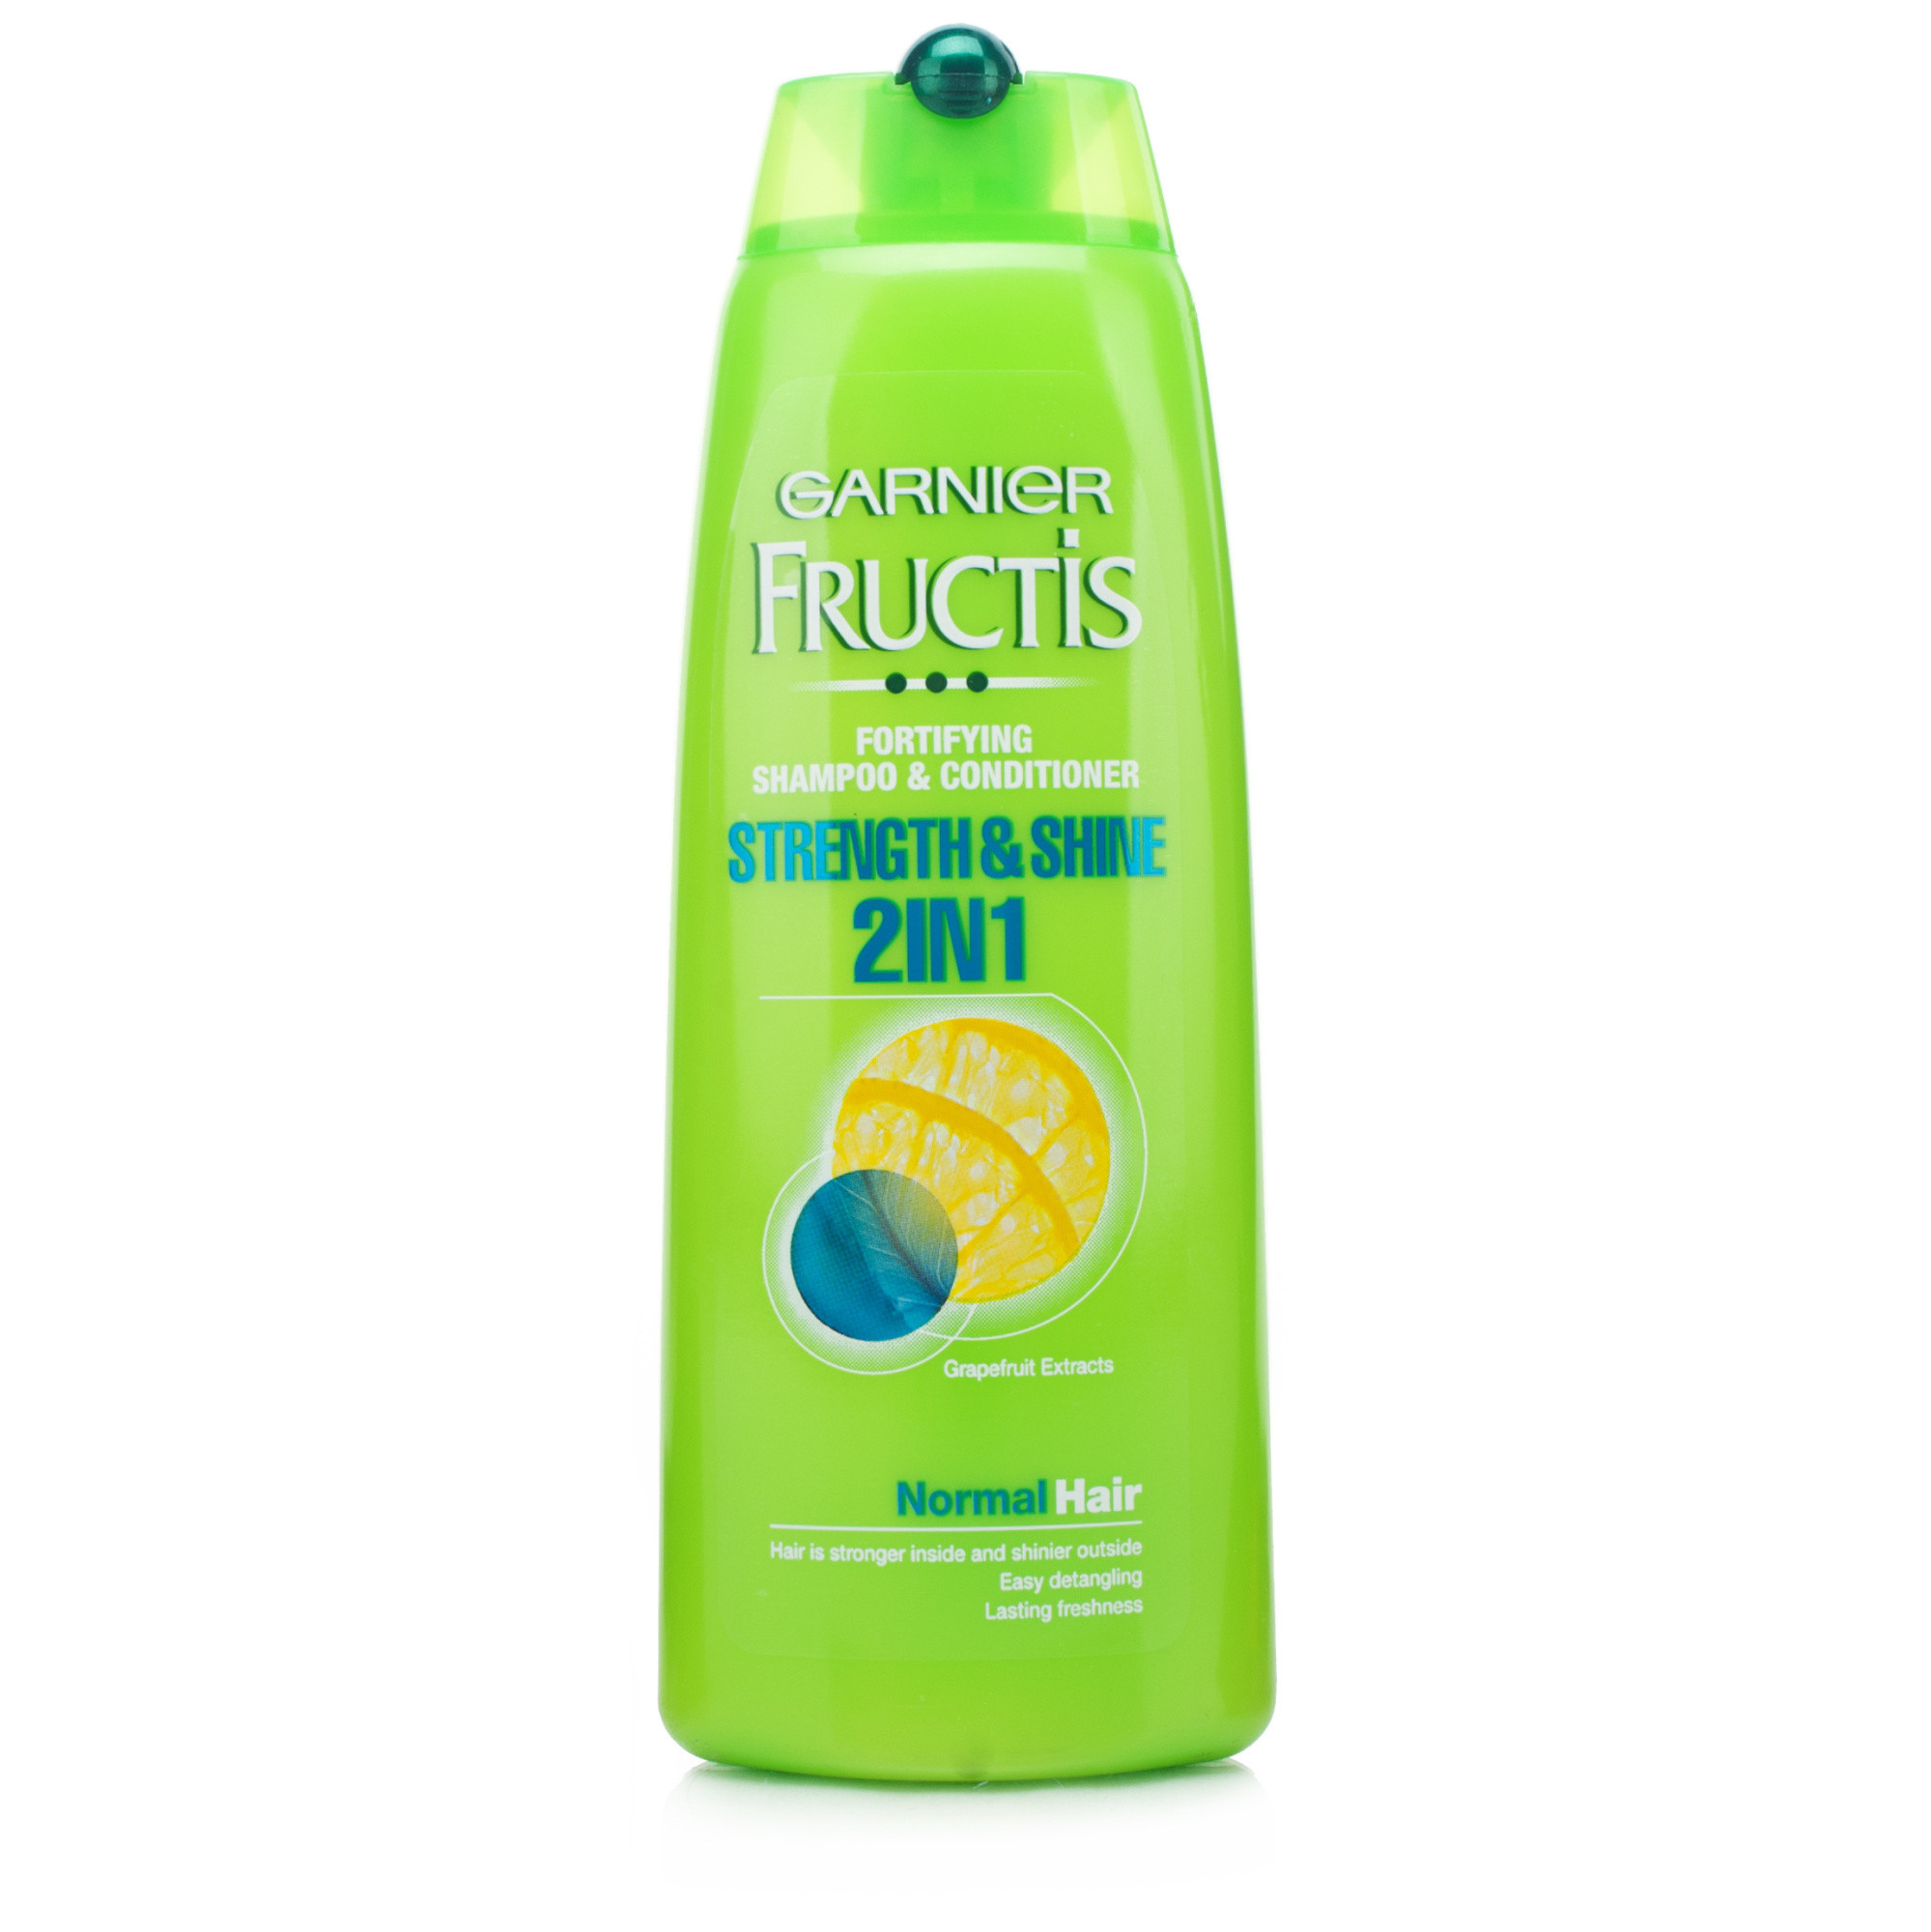 Garnier Fructis Strength & Shine 2-in-1 Shampoo